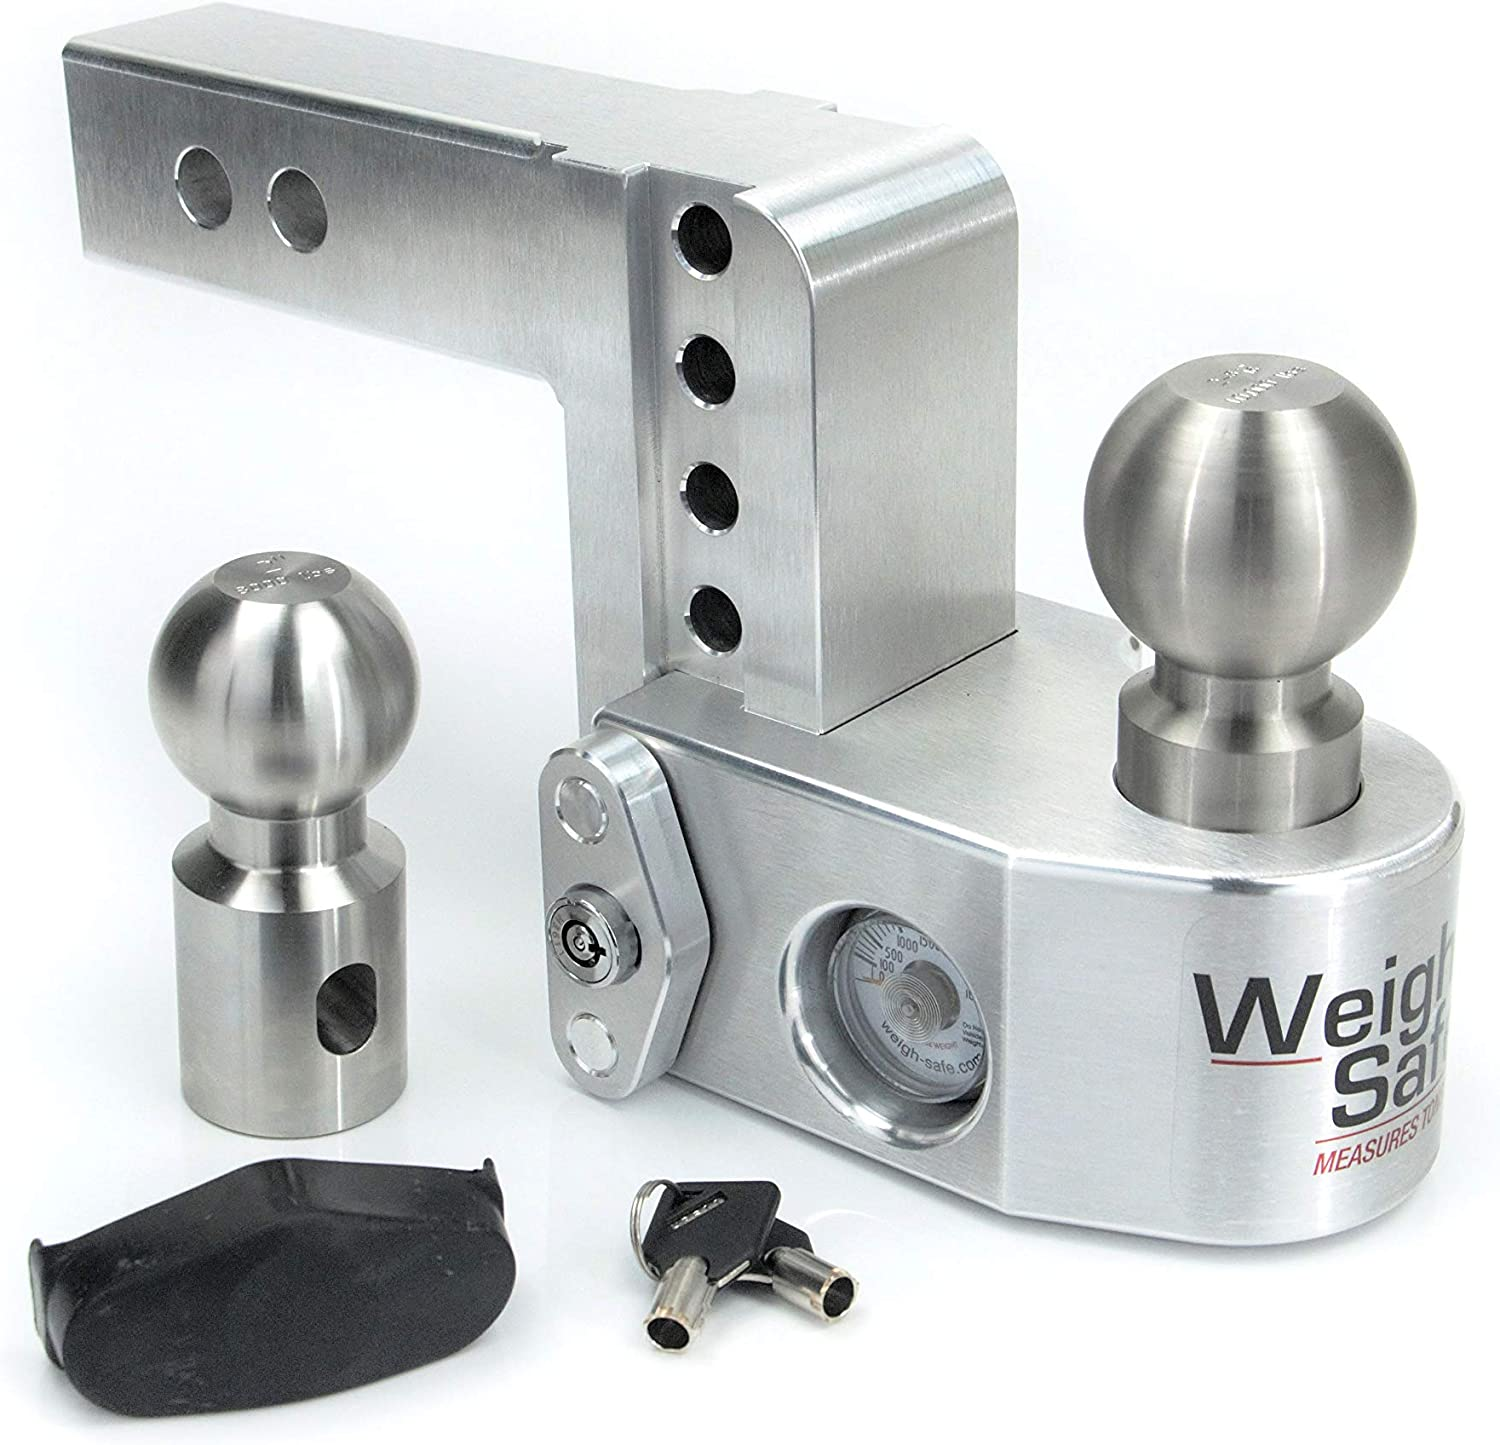 Adjustable Aluminum Trailer Hitch /& Ball Mount w// Built-in Scale 2 /& 2-5//16 2 Stainless Steel Balls Weigh Safe WS10-2 and a Double-pin Key Lock 10 Drop Hitch w// 2 Shank//Shaft